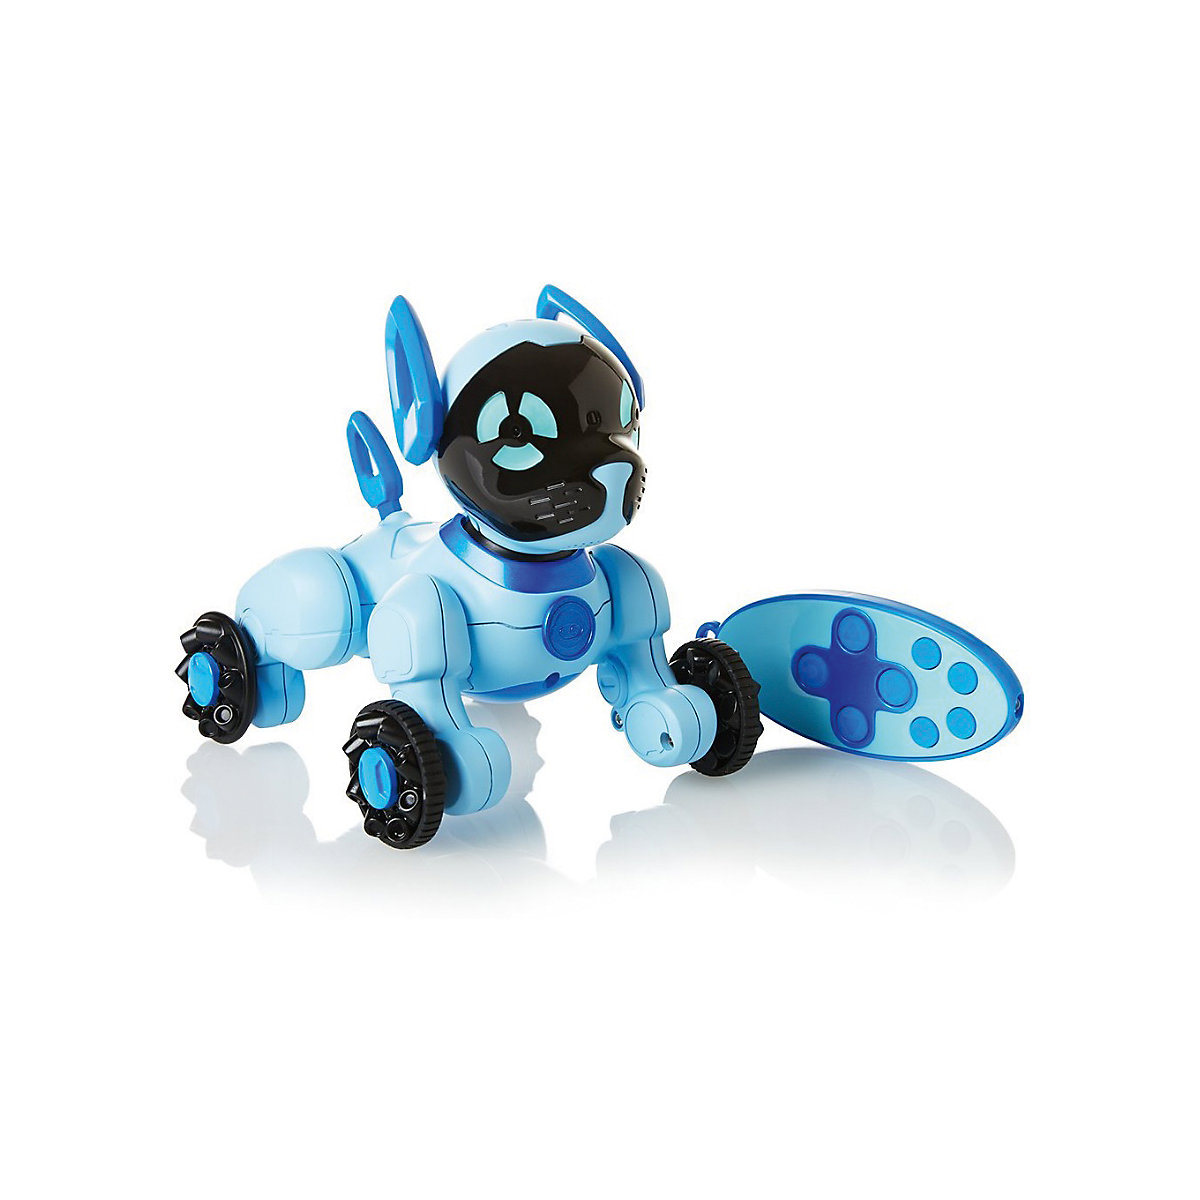 Electronic Pets WowWee 7314003 Tamagochi Robot Toys Interactive Dog Animals Kids sleeping dog toy soft toys lying kawaii long ears plush peluches bebe for girls small large stuffed animals dogs 70c0646